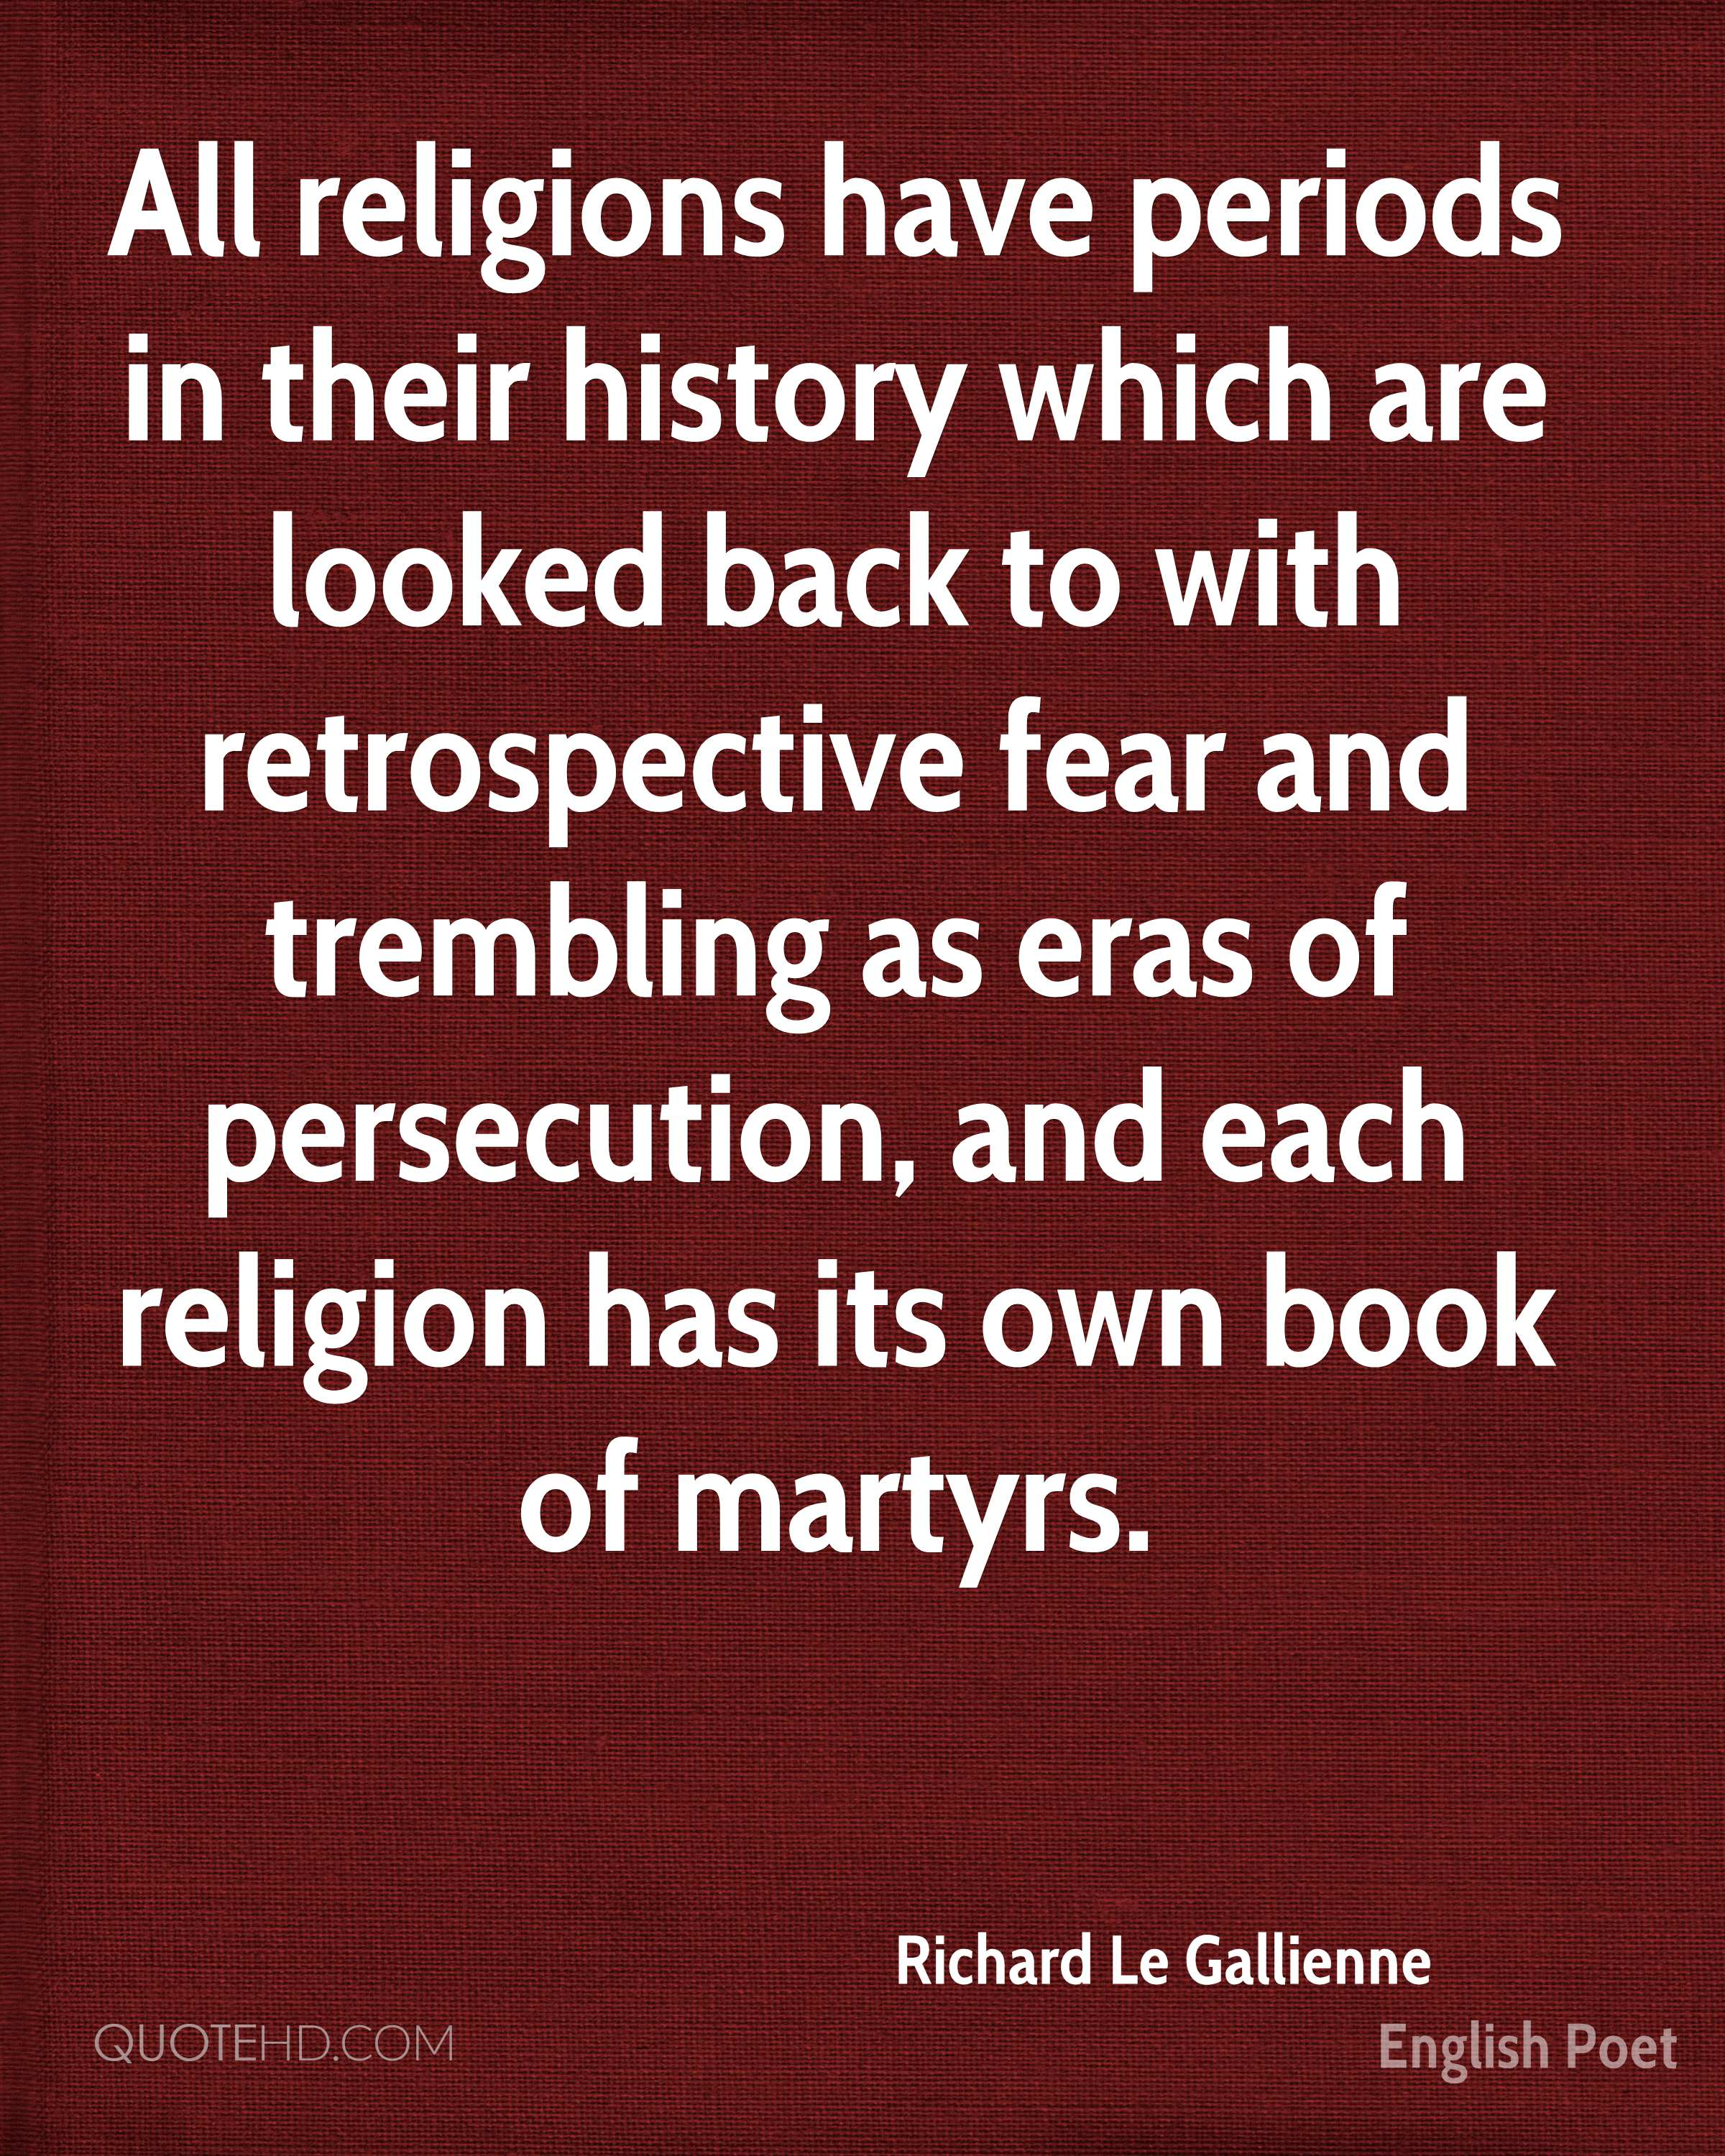 All religions have periods in their history which are looked back to with retrospective fear and trembling as eras of persecution, and each religion has its own book of martyrs.